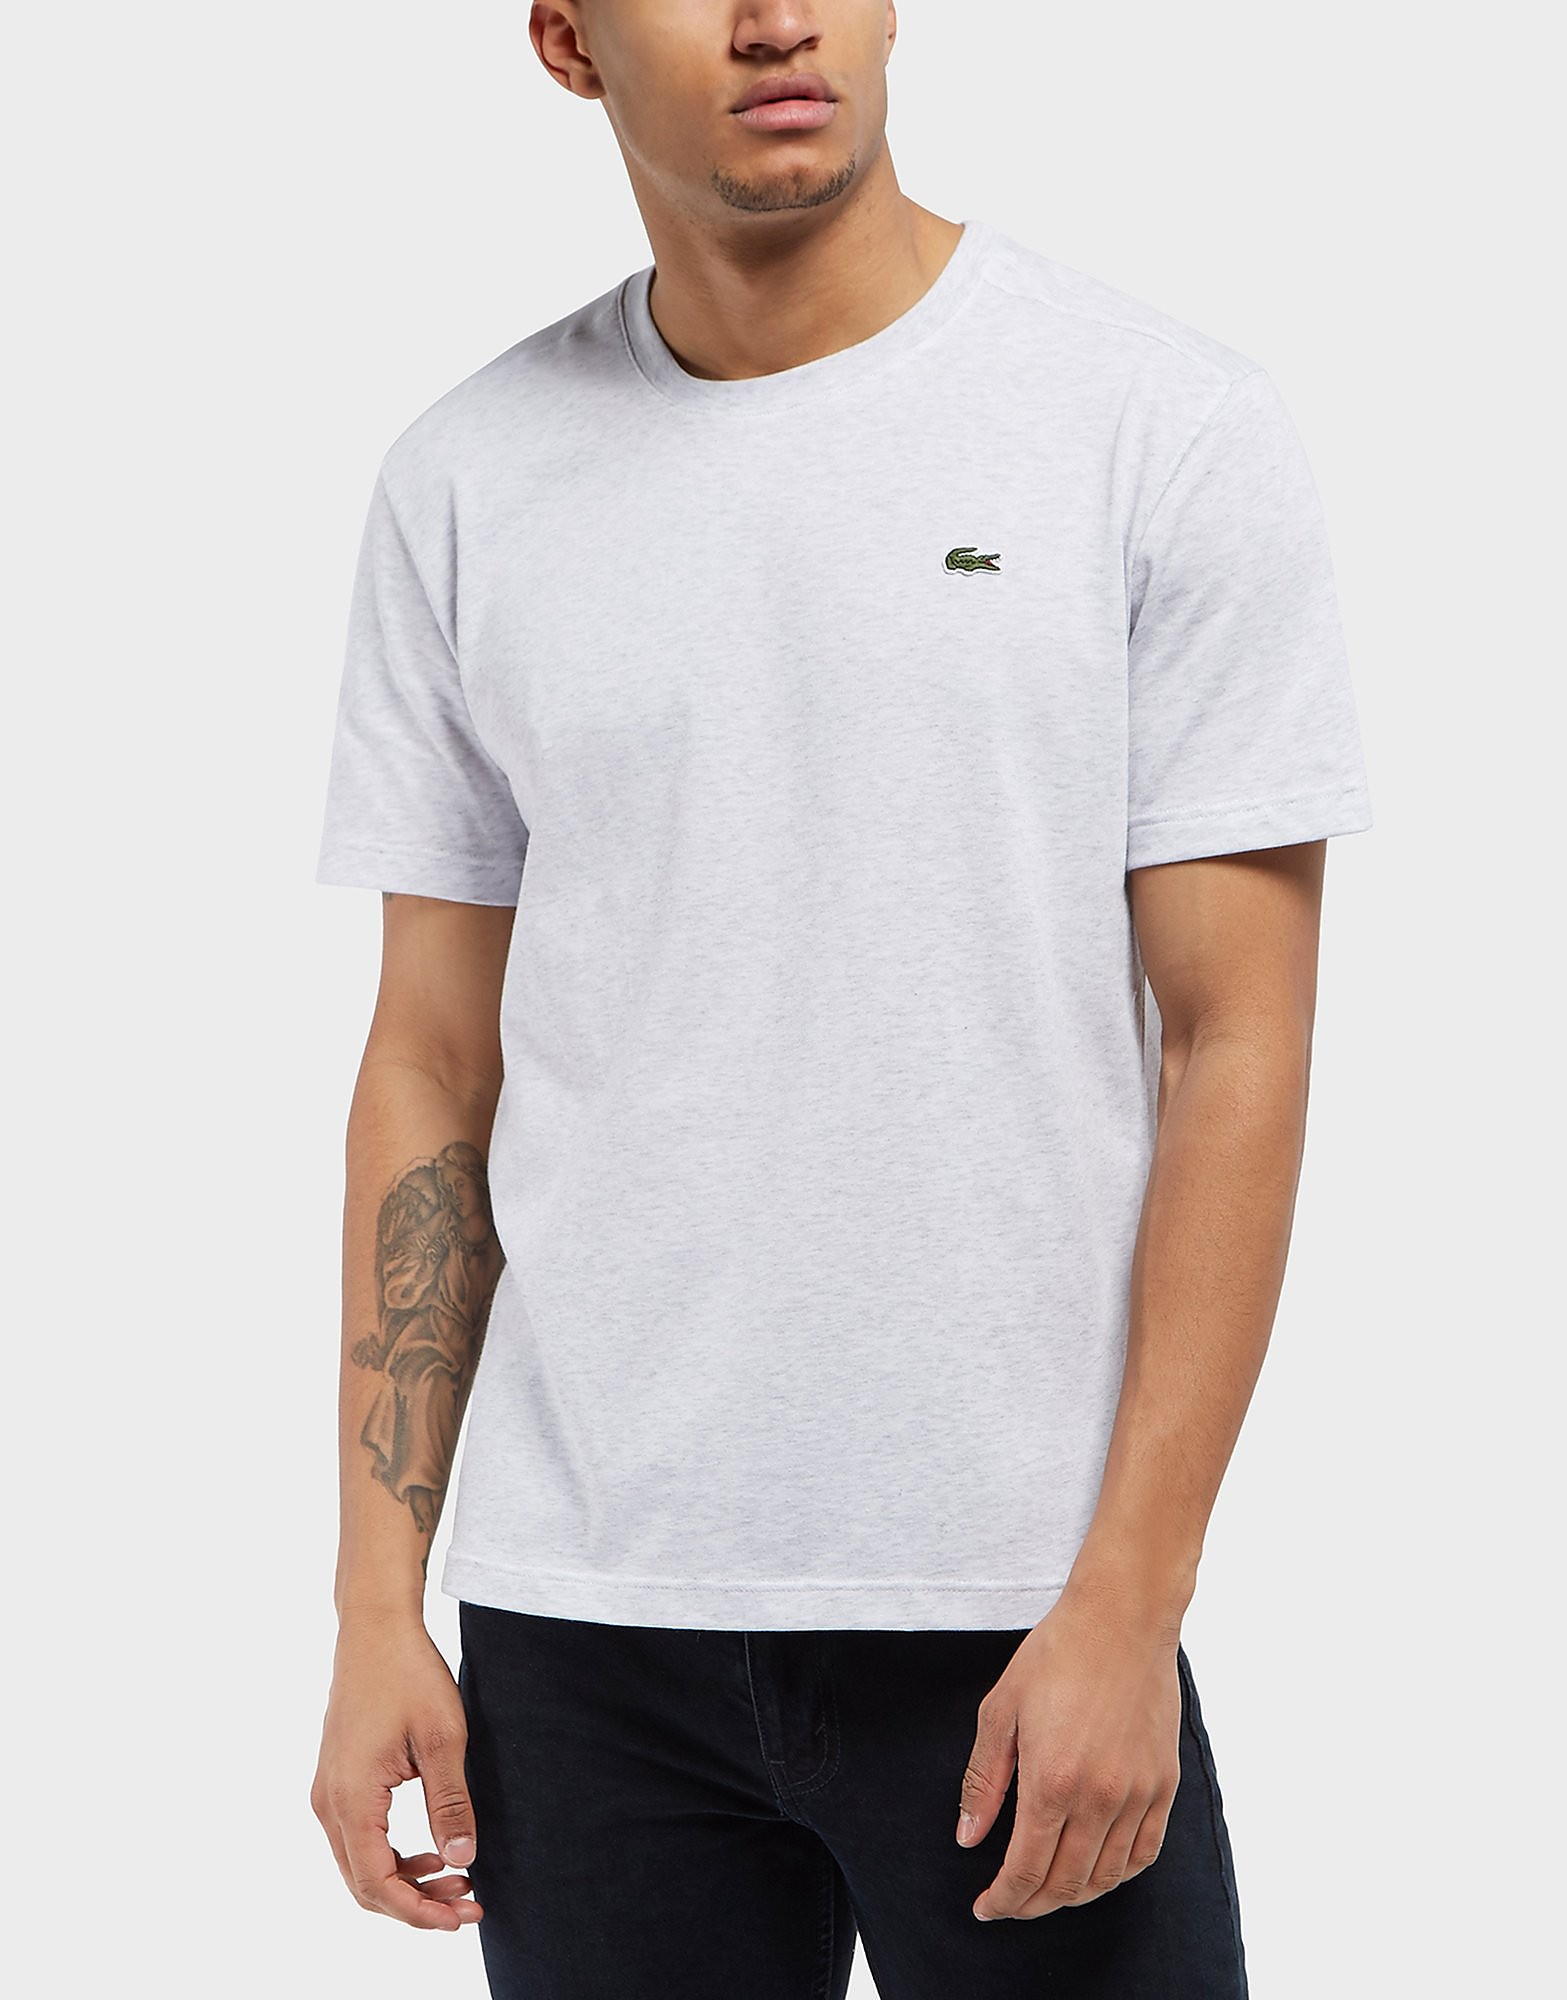 Lacoste Jersey Crew Short Sleeve T-Shirt